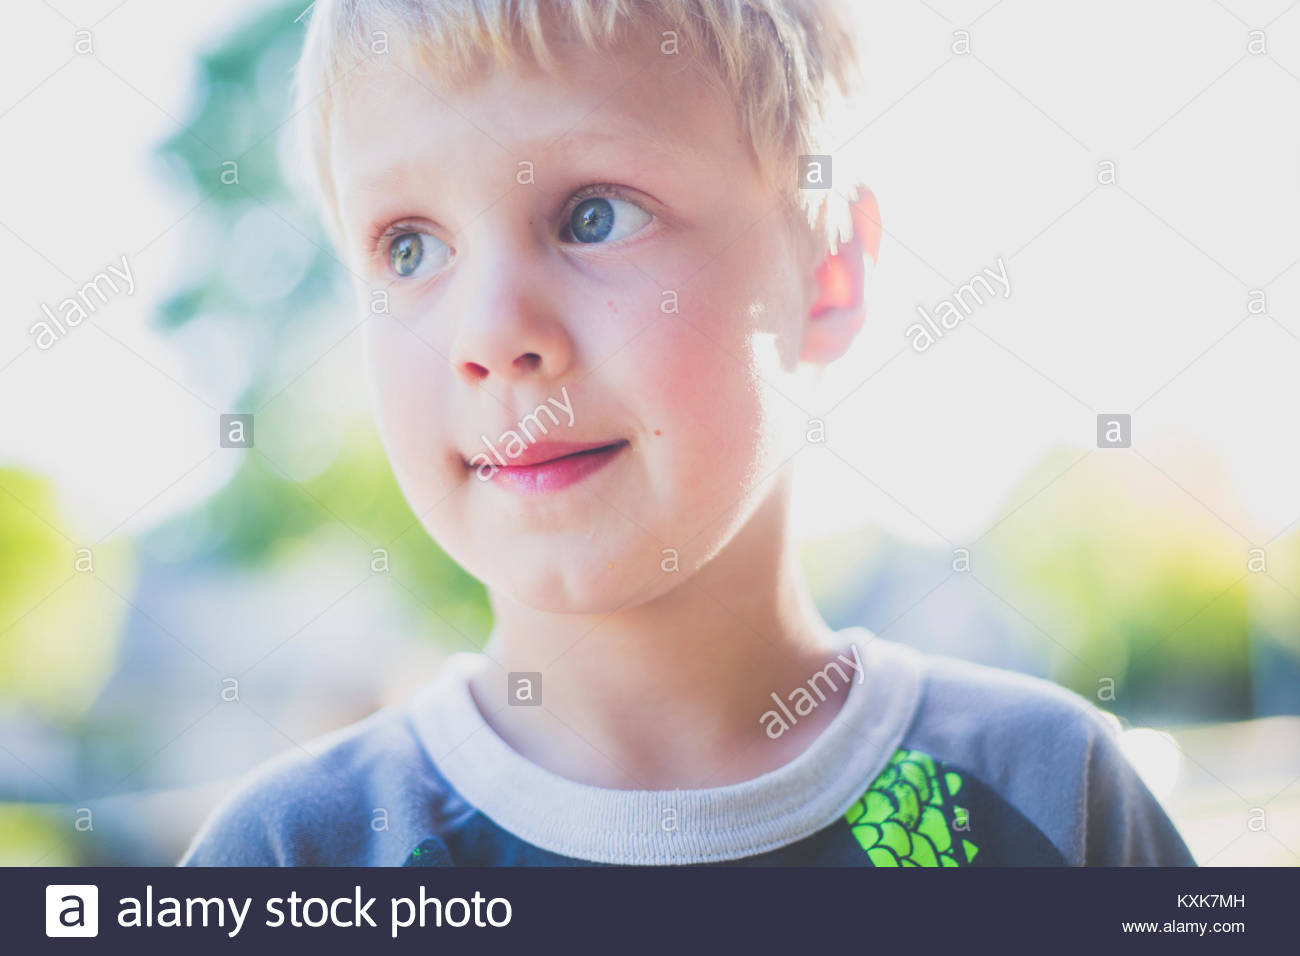 Close-up of cute thoughtful boy looking away - Stock Image